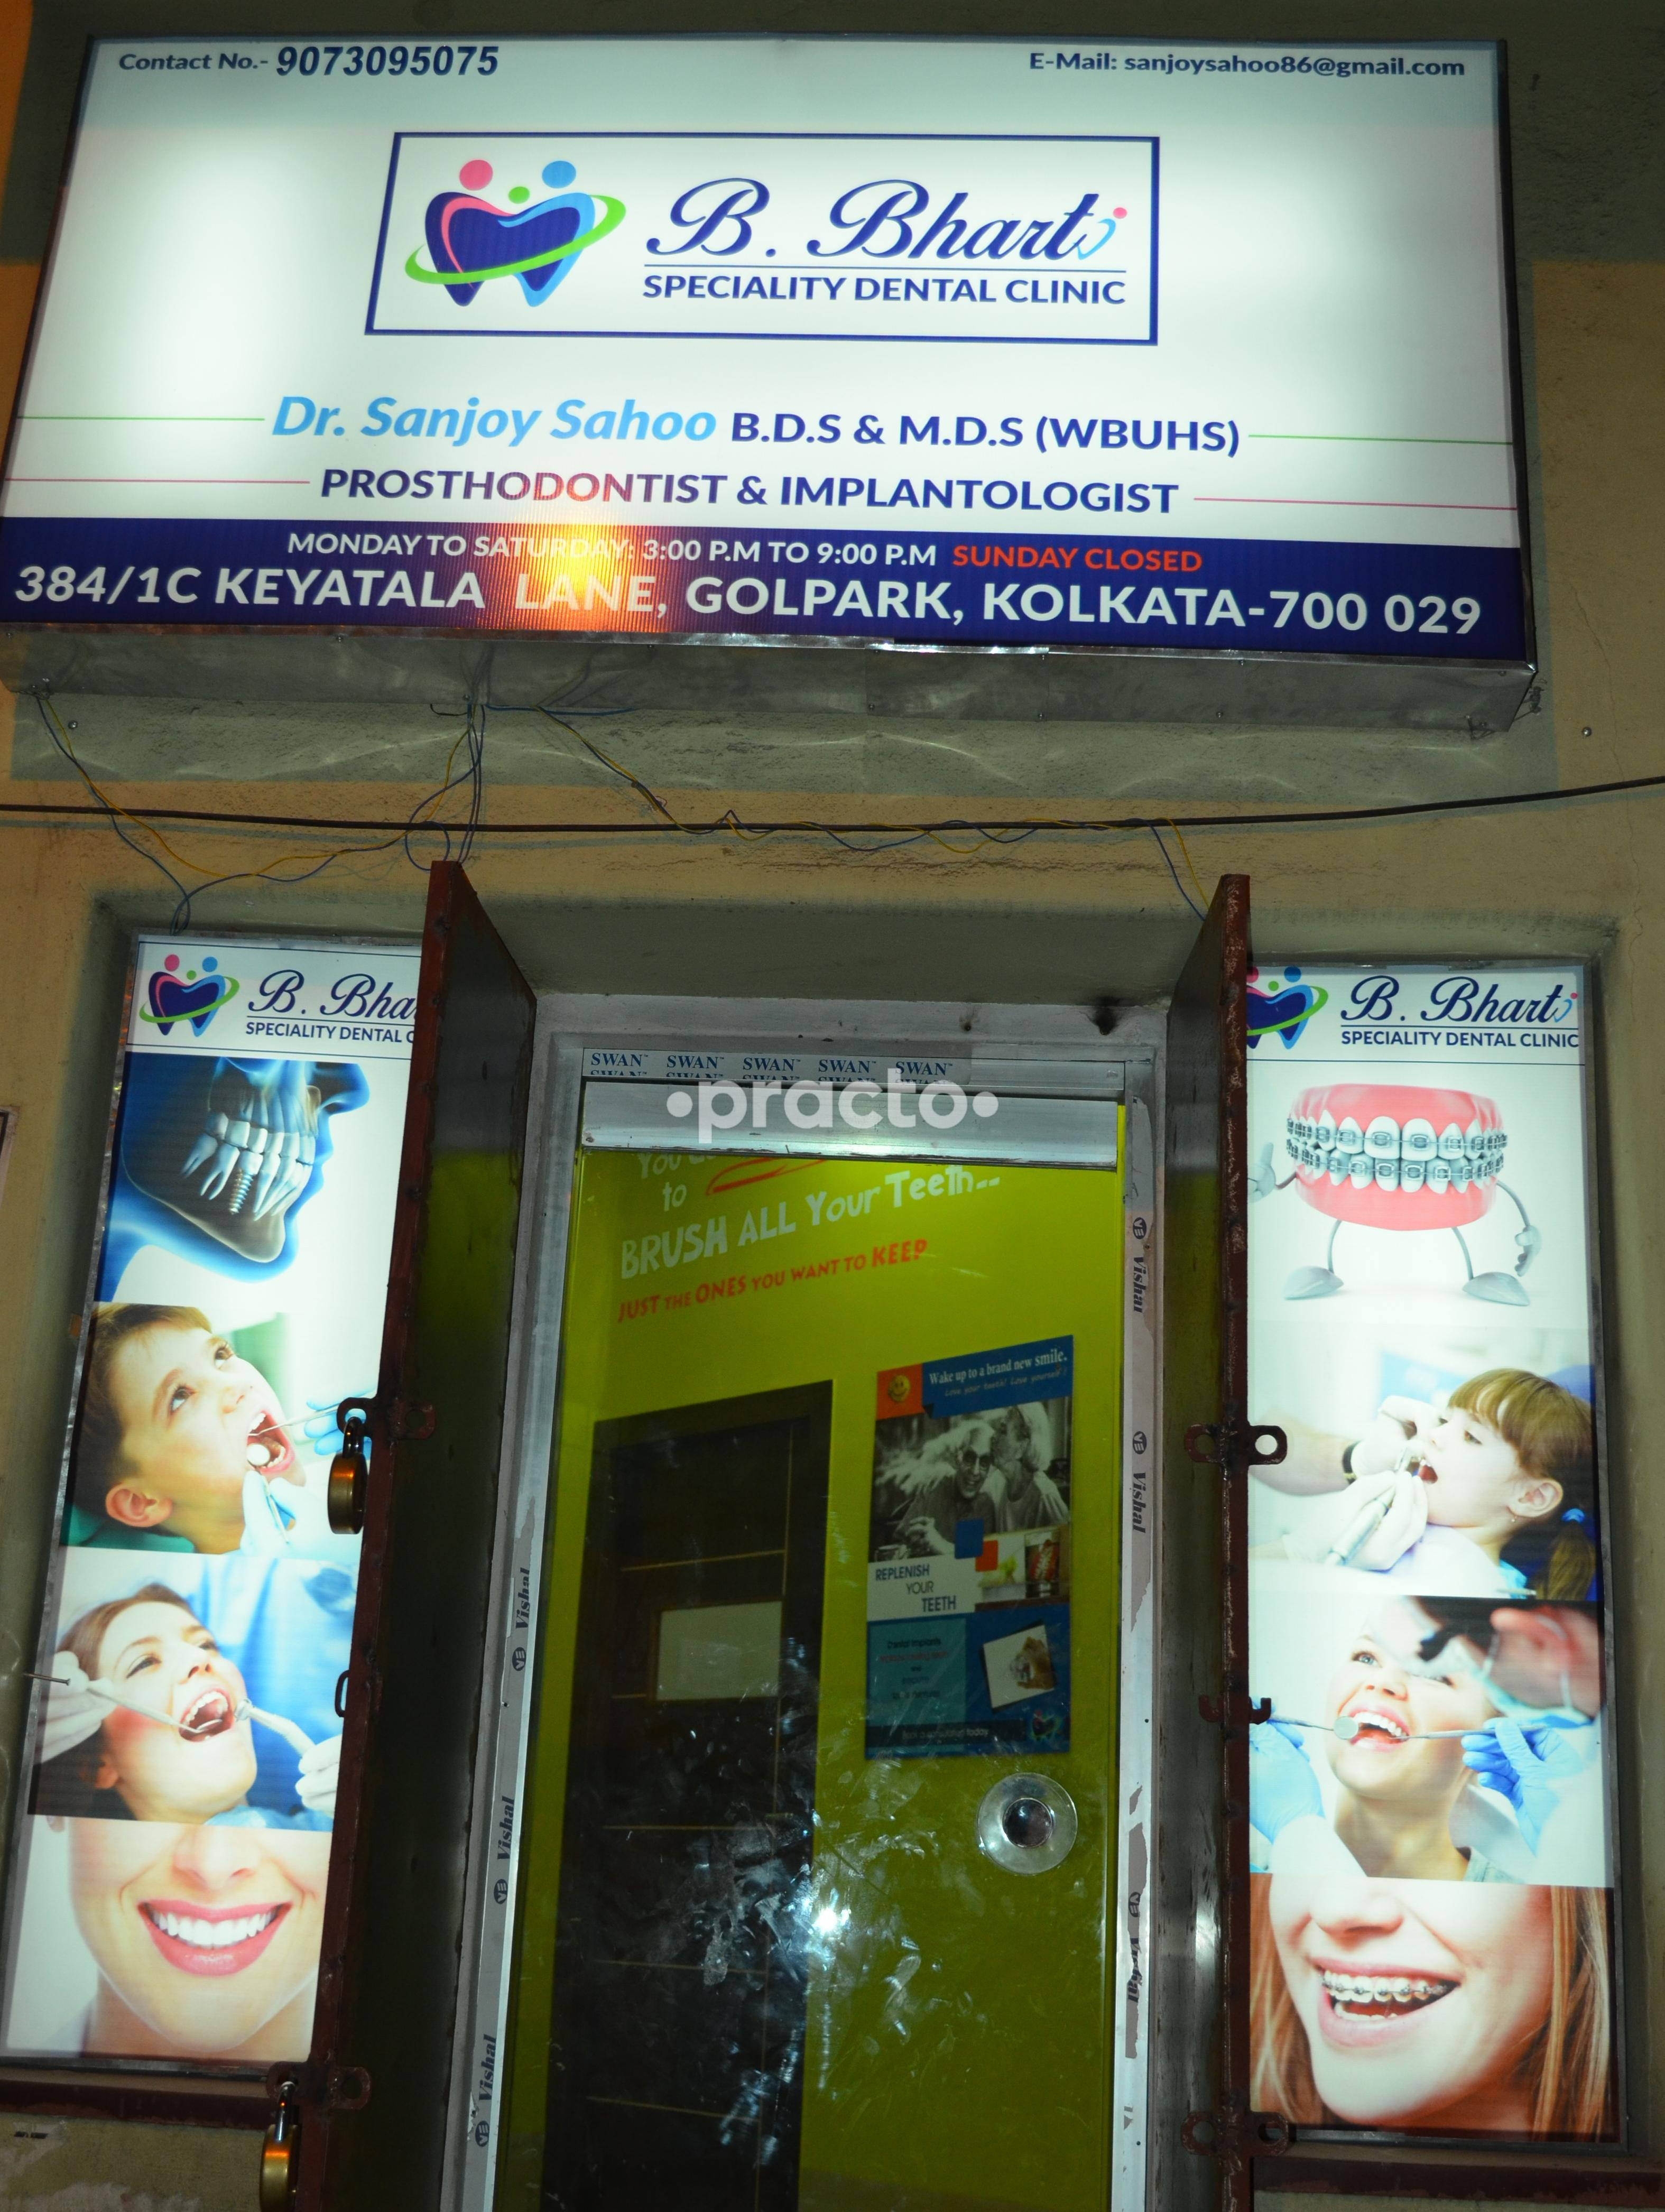 B. Bharti Specialty Dental Clinic, Multi-Speciality Clinic in Gariahat, Kolkata - Book Appointment, View Fees, Feedbacks | Practo